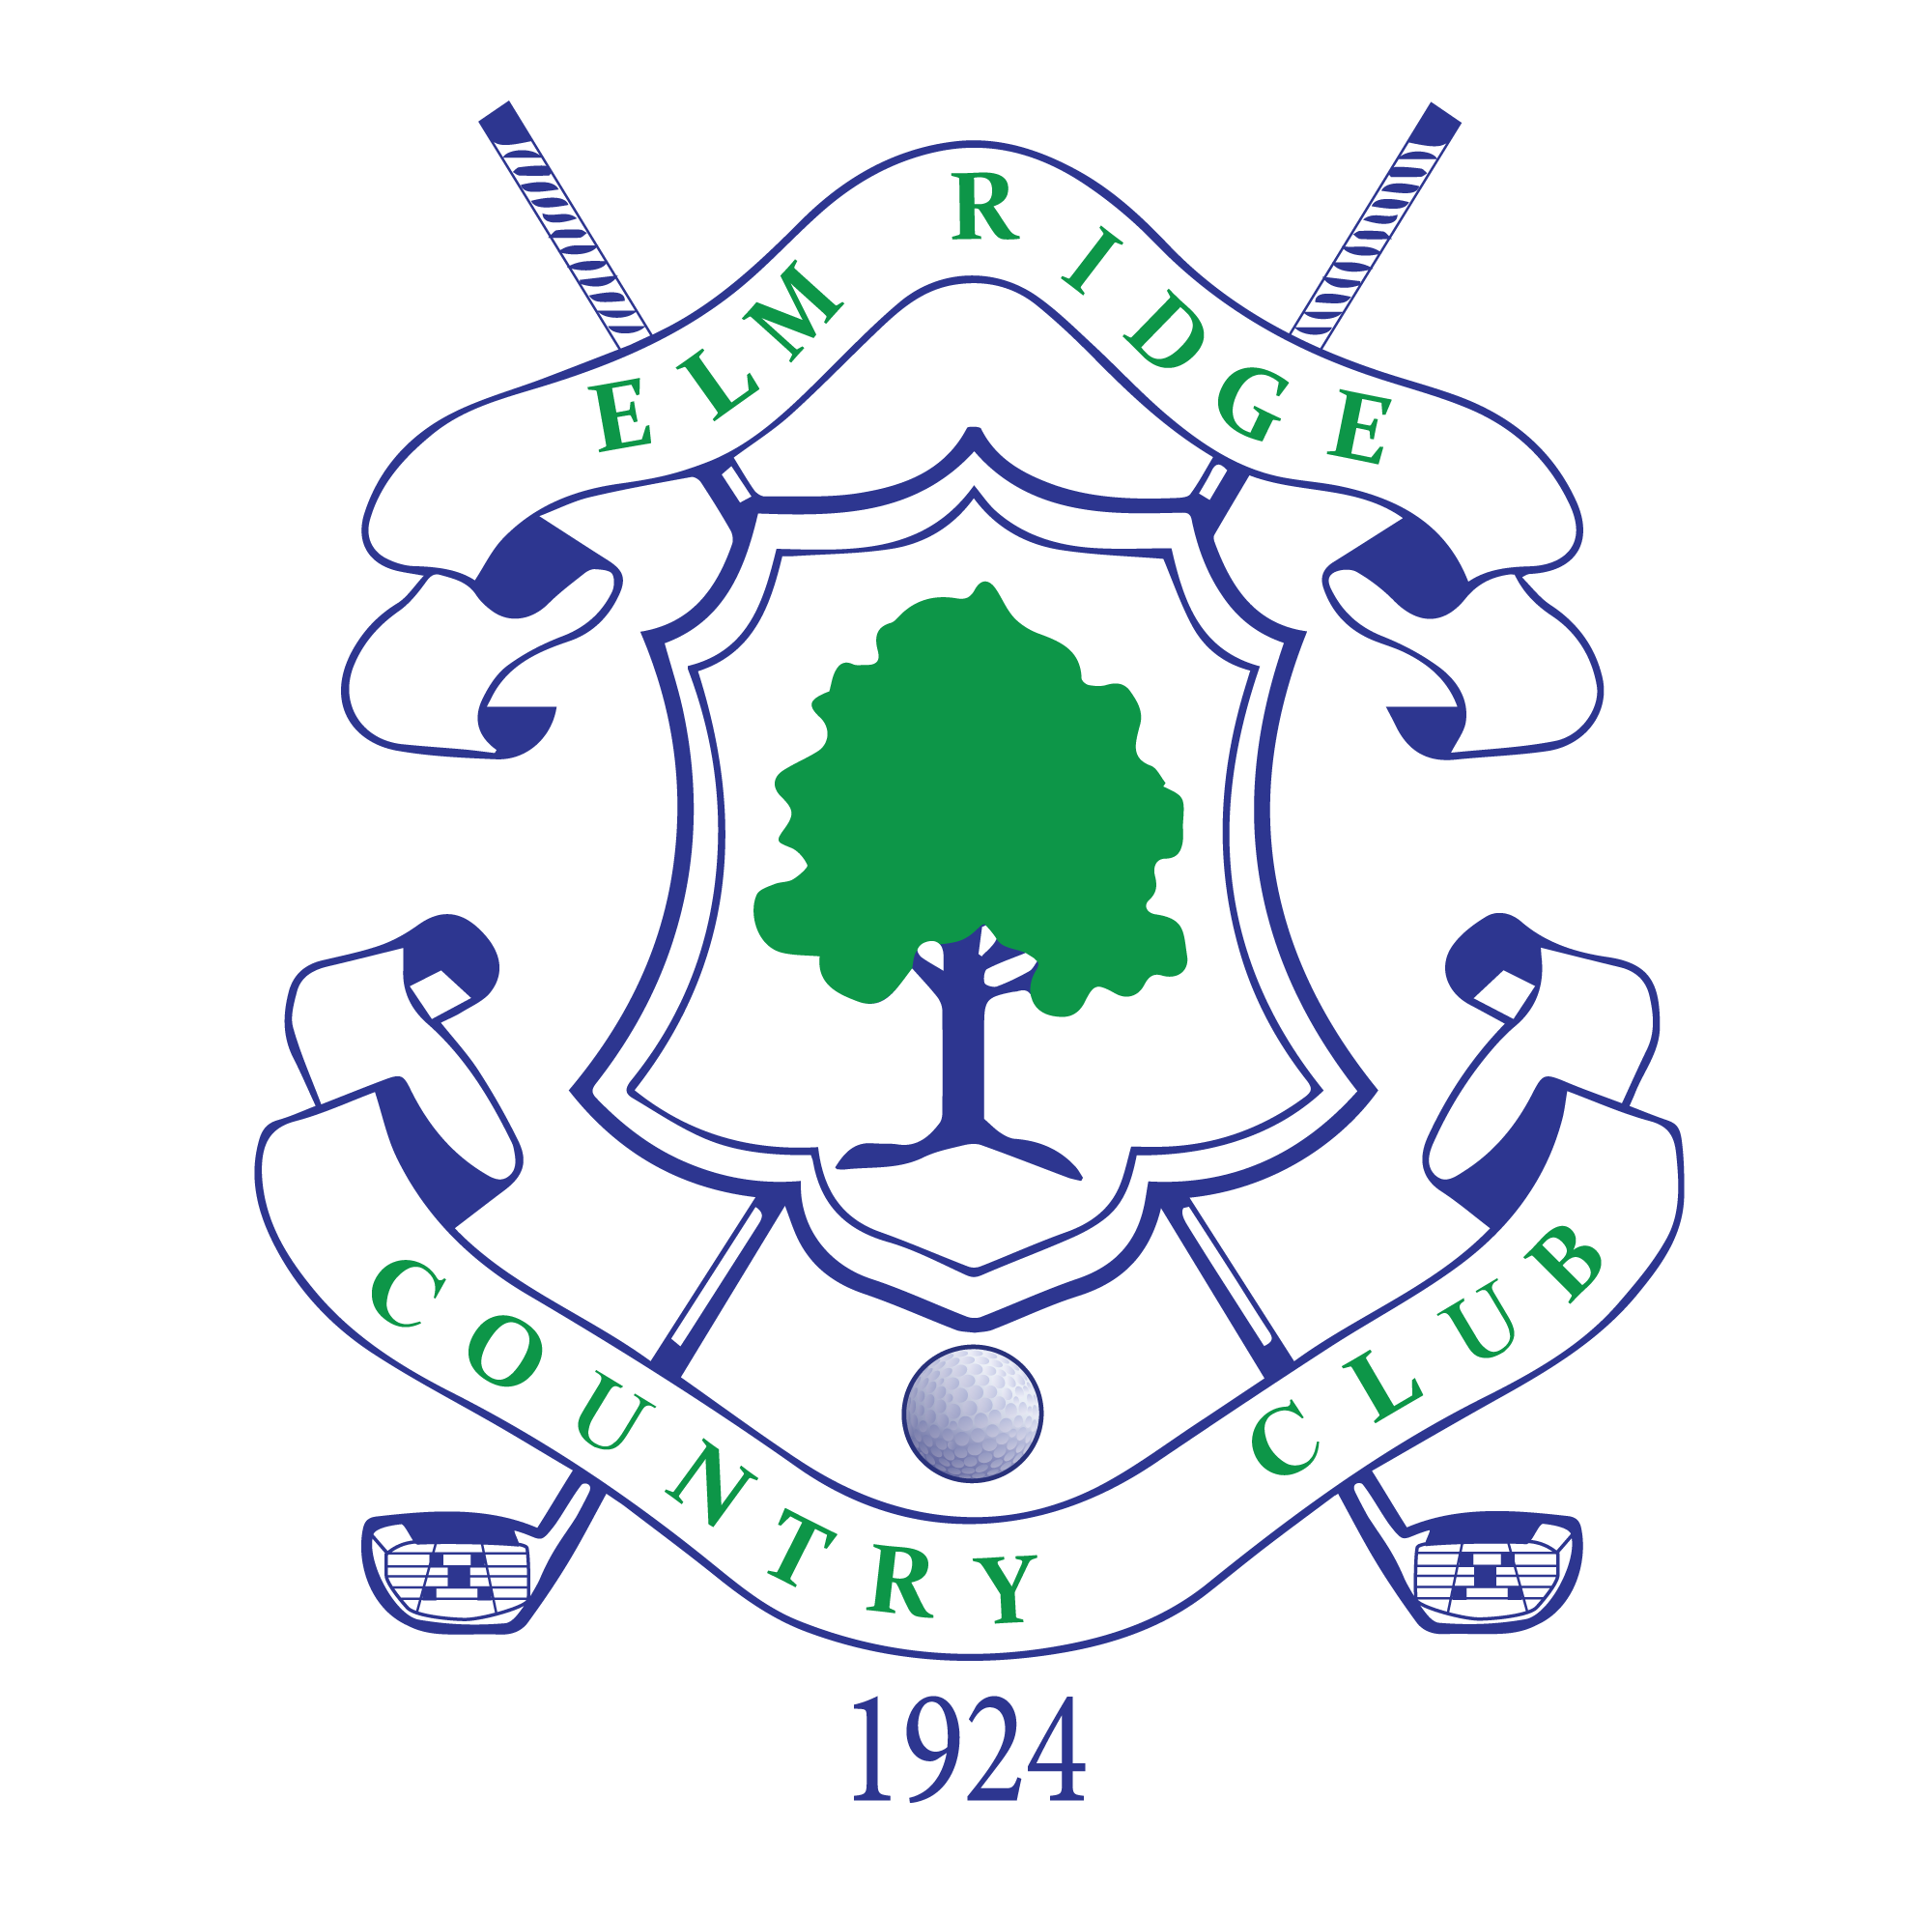 Elm Ridge Country Club